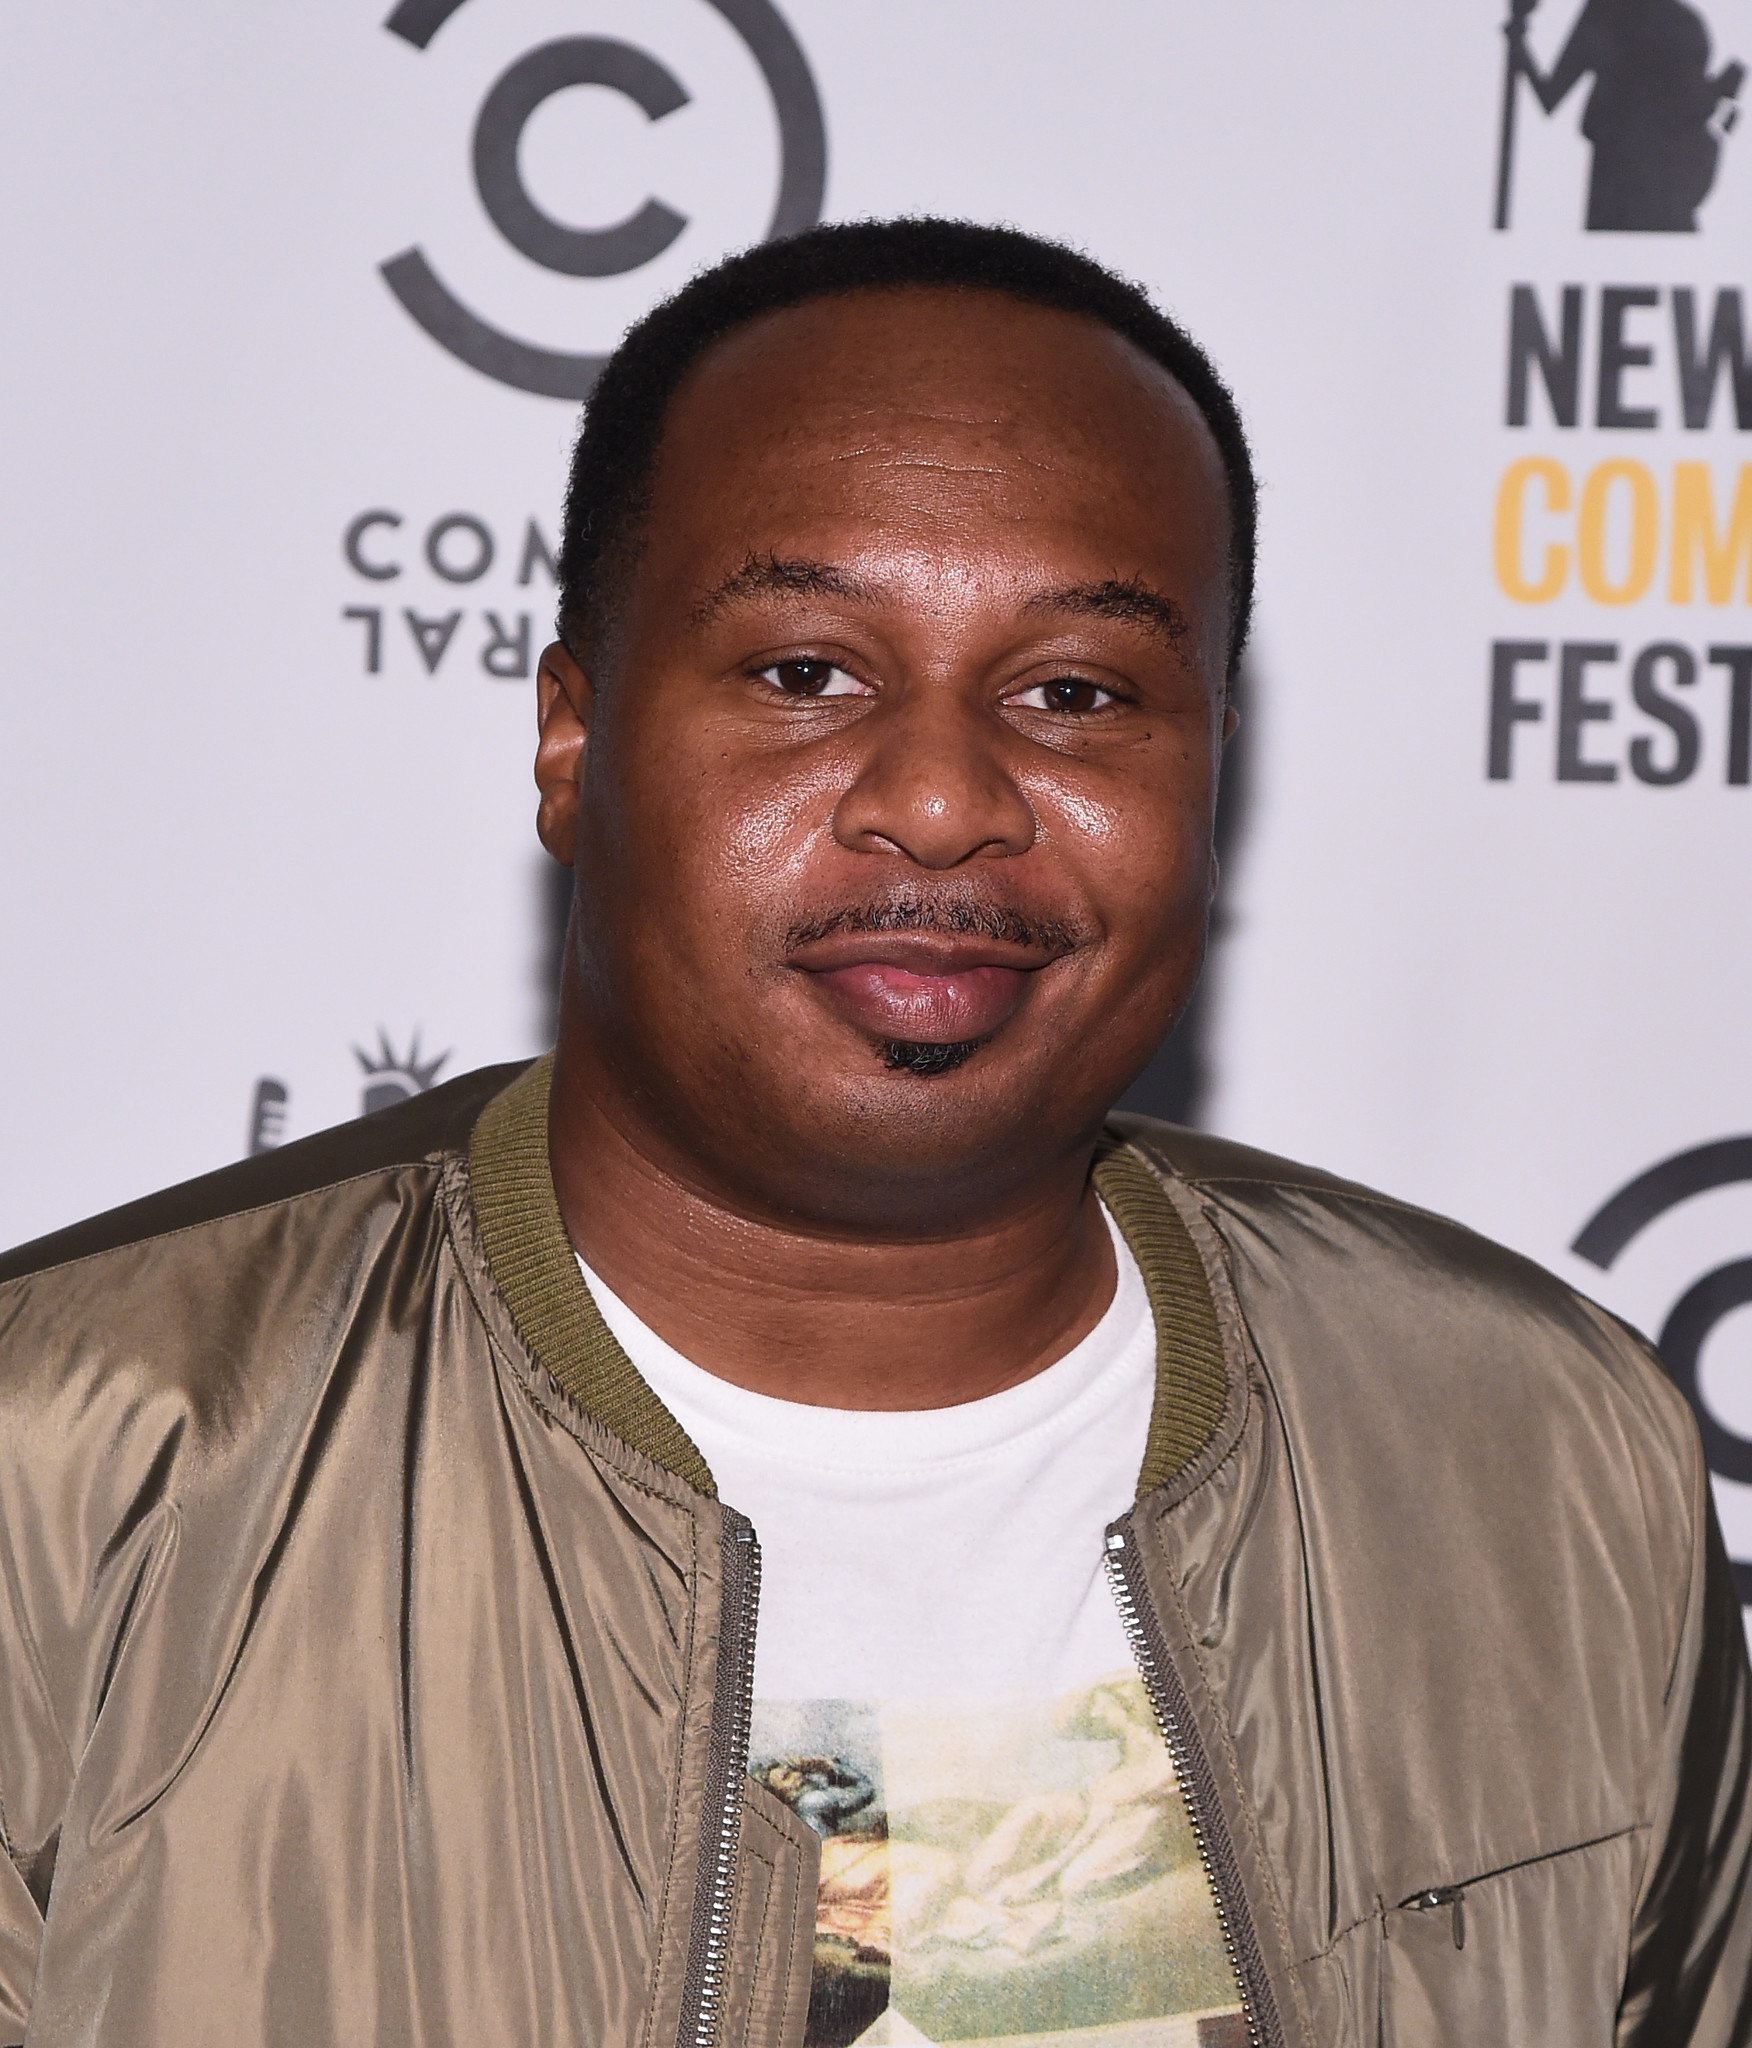 39 The Daily Show 39 S 39 Roy Wood Jr Taking Rain From Game 7 To Ebay Chicago Tribune